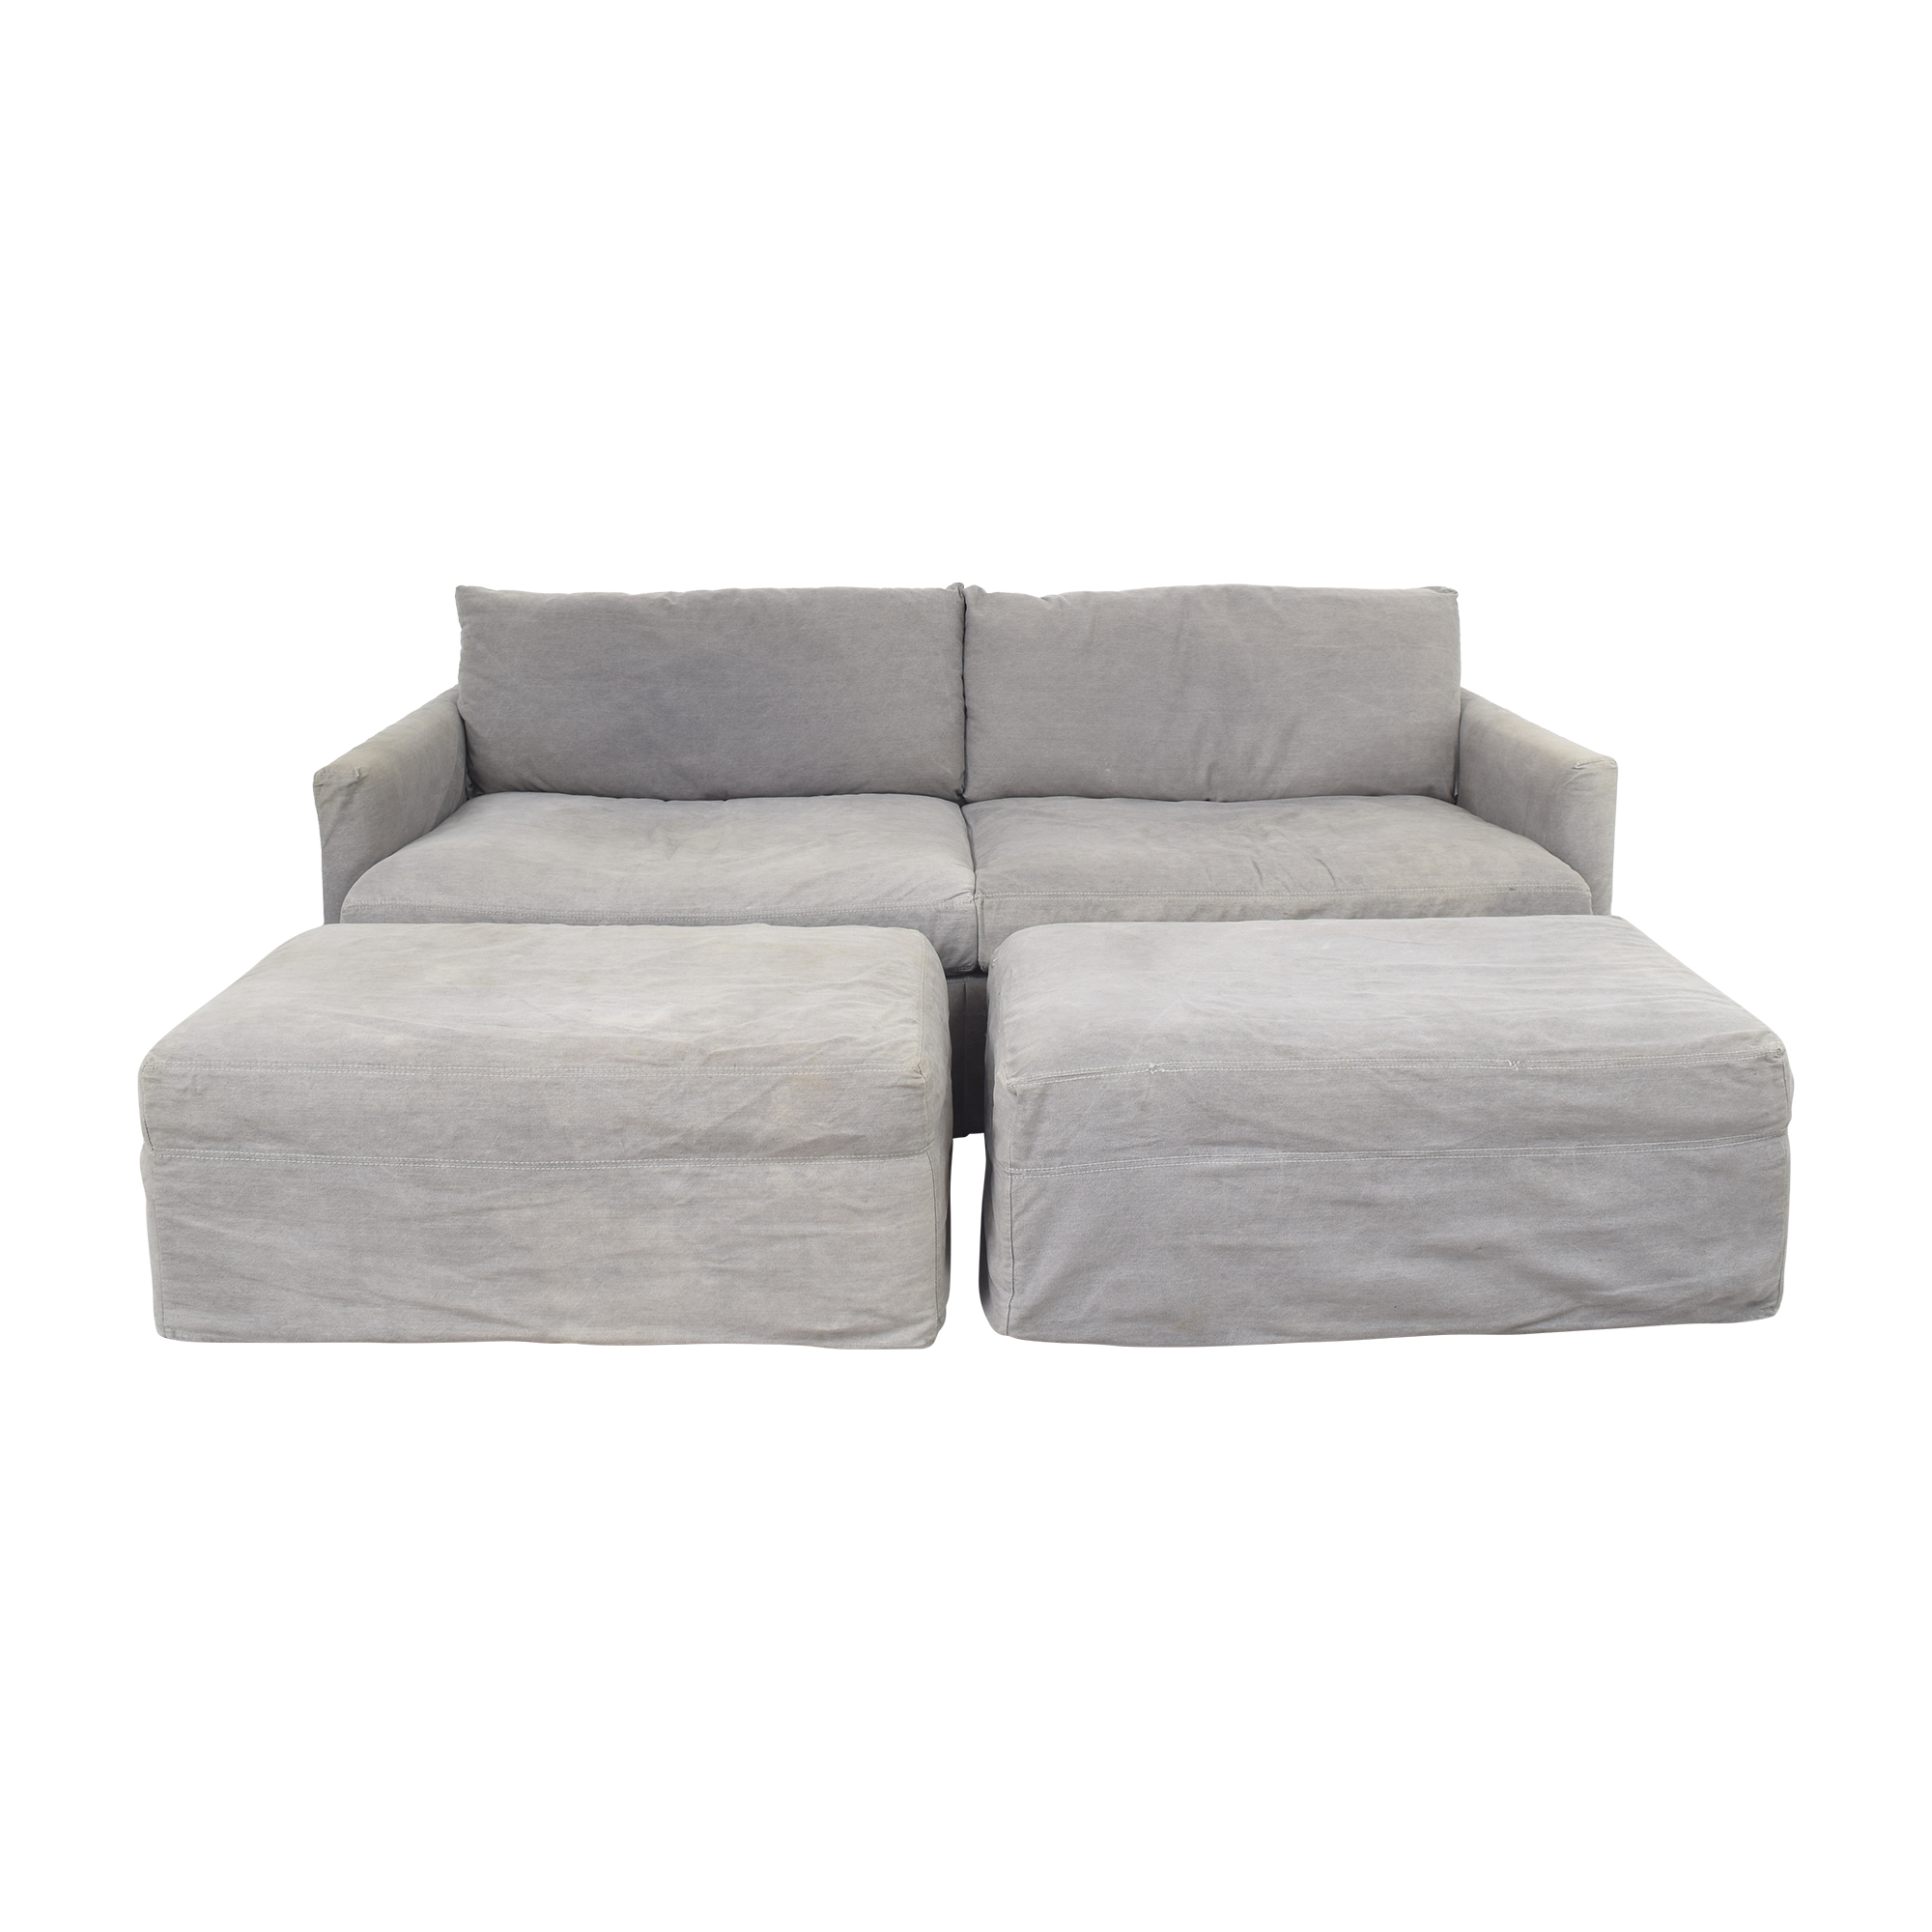 shop Crate & Barrel Crate & Barrel Lounge II Sofa with Two Ottomans on Casters online